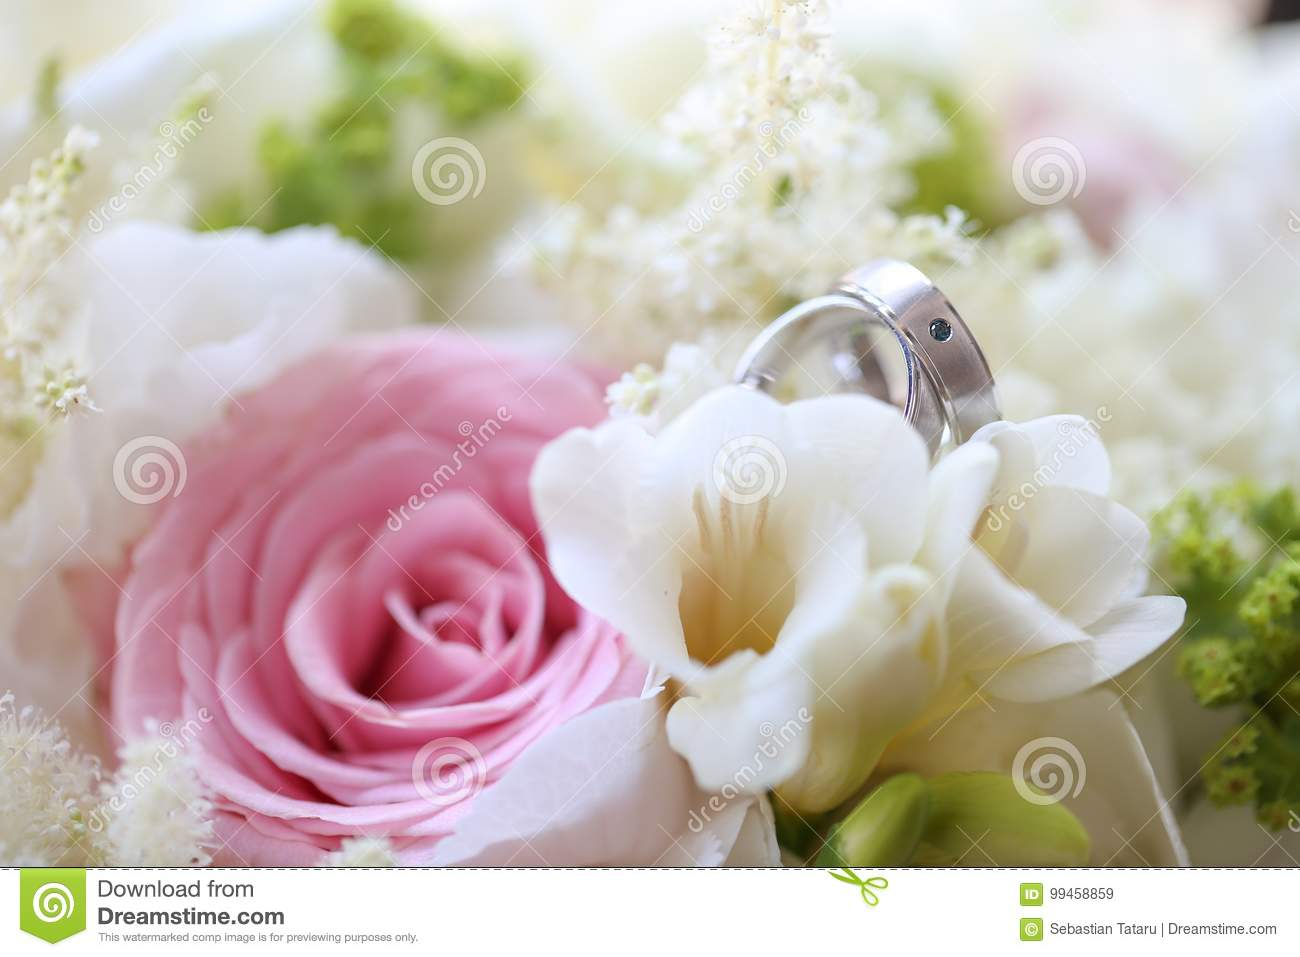 Close Up Of Silver Wedding Rings Stock Image - Image of invitation ...